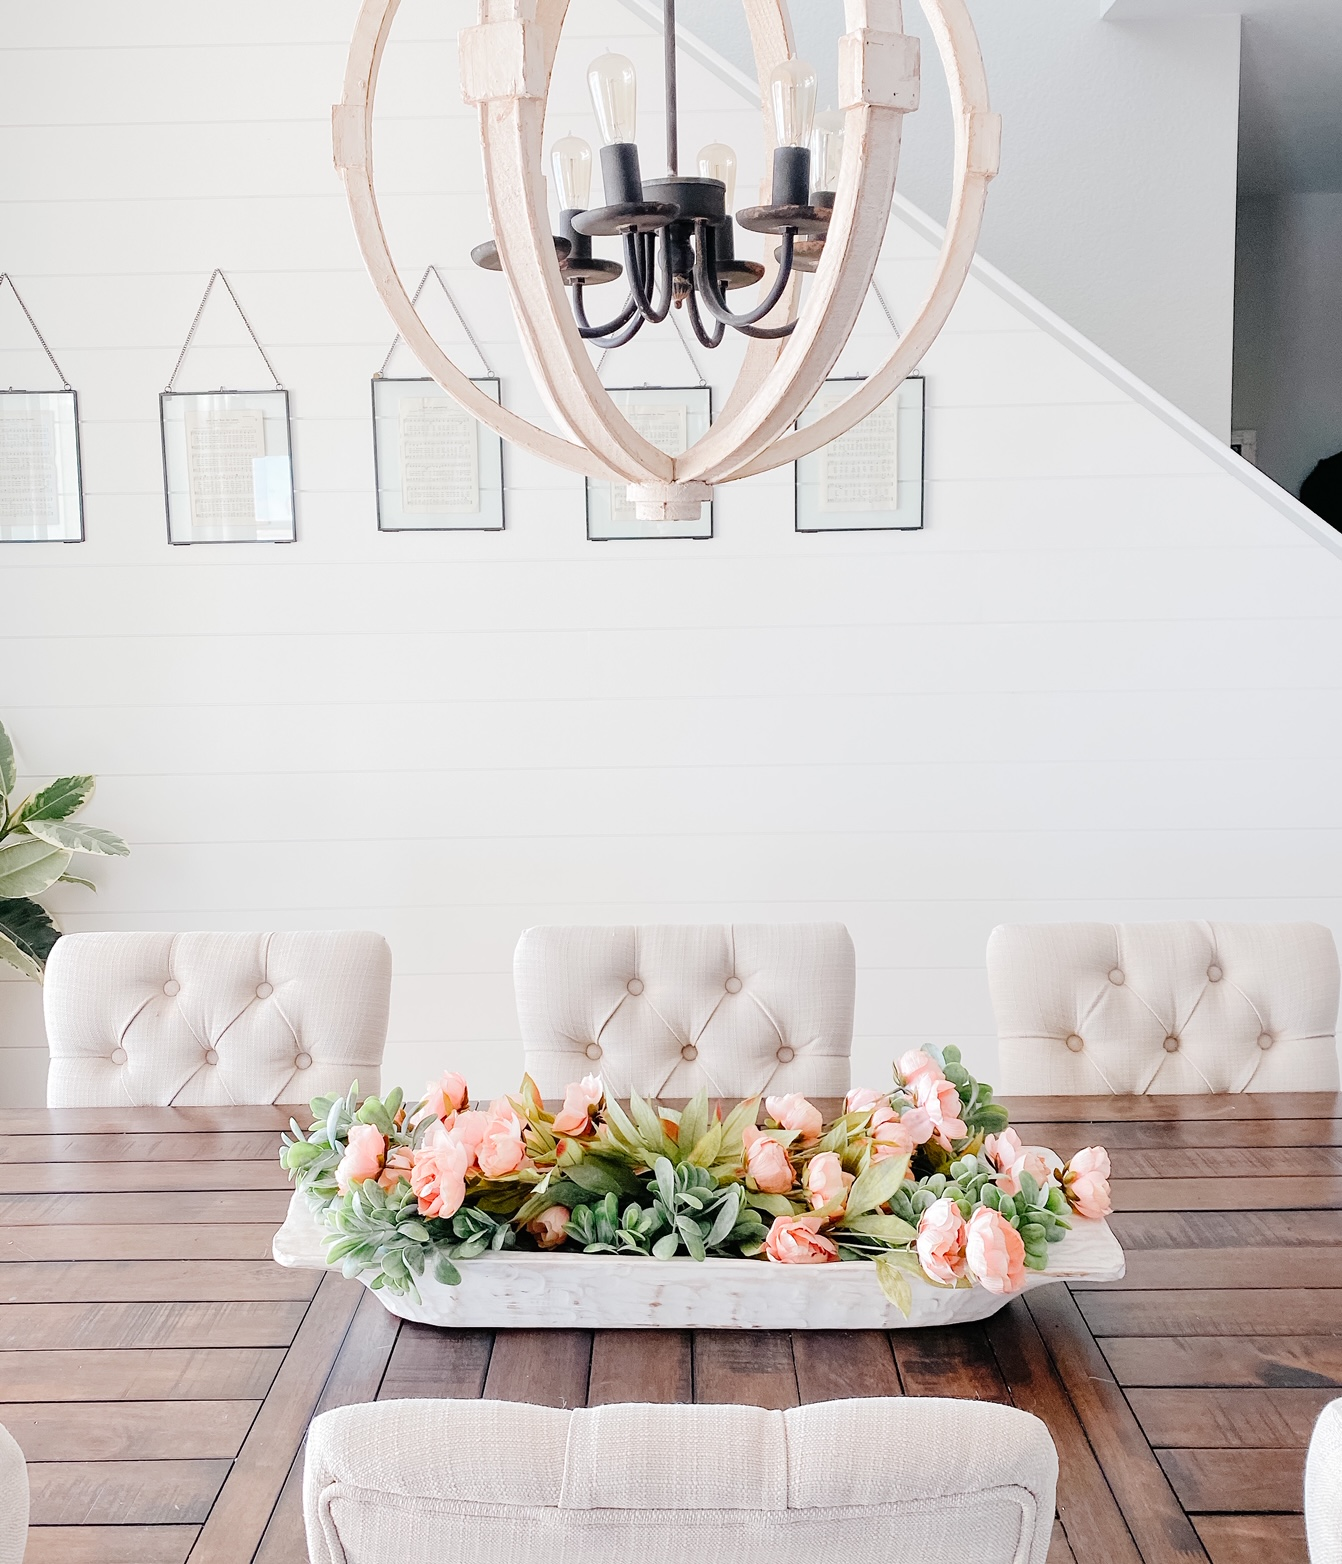 Faux spring florals in a dough bowl makes for a simple dining table centerpiece